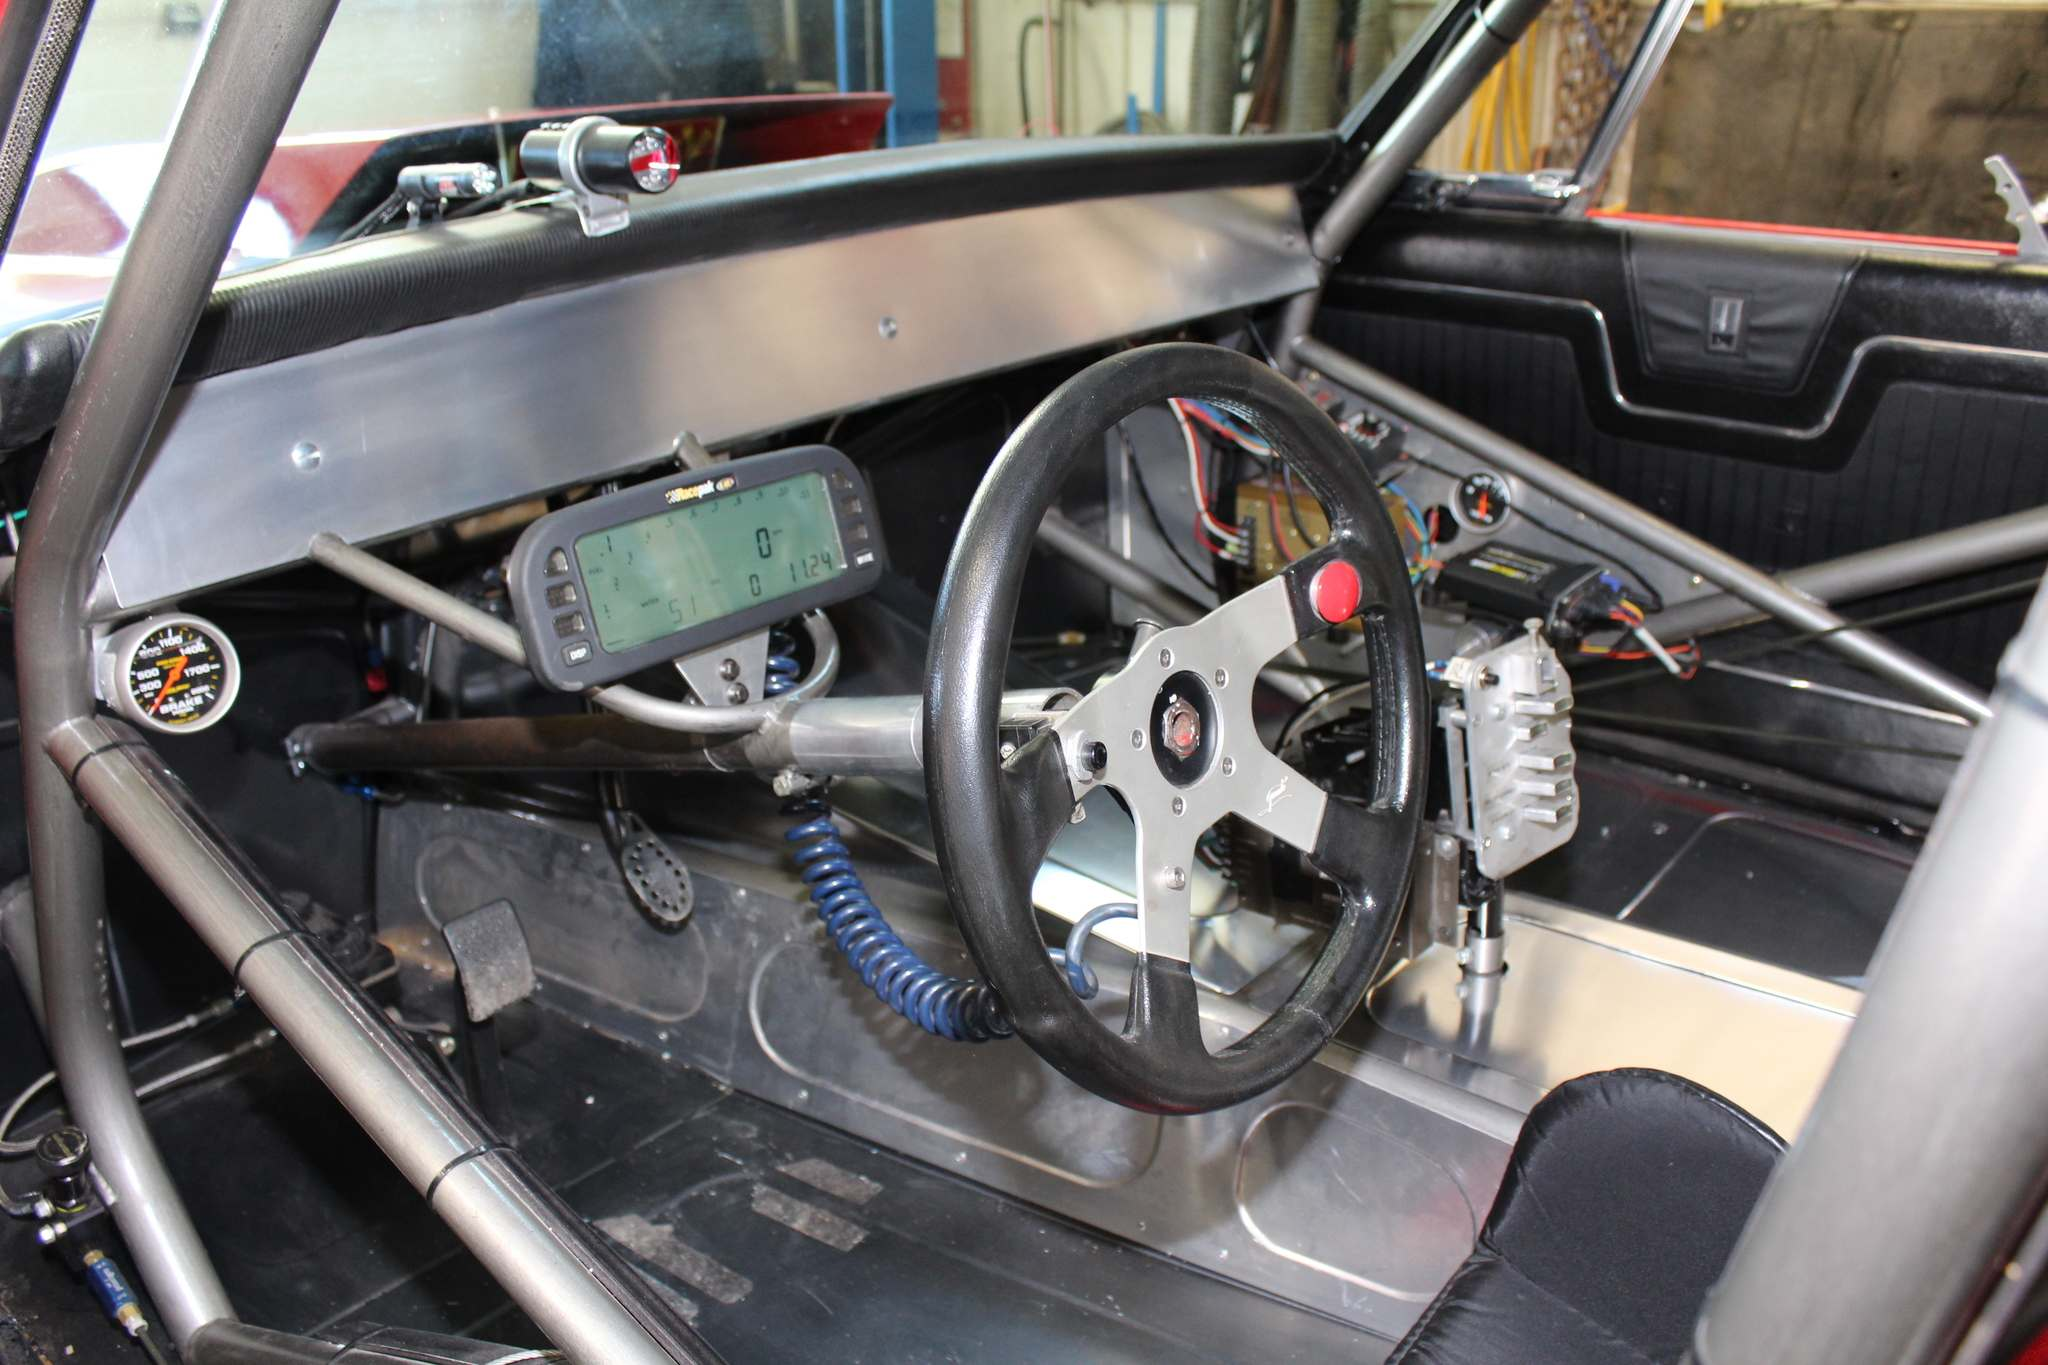 One look at the interior of Dale Altstadt's 1964 Plymouth Sport Fury, and you get the idea it is purpose-built for drag racing.